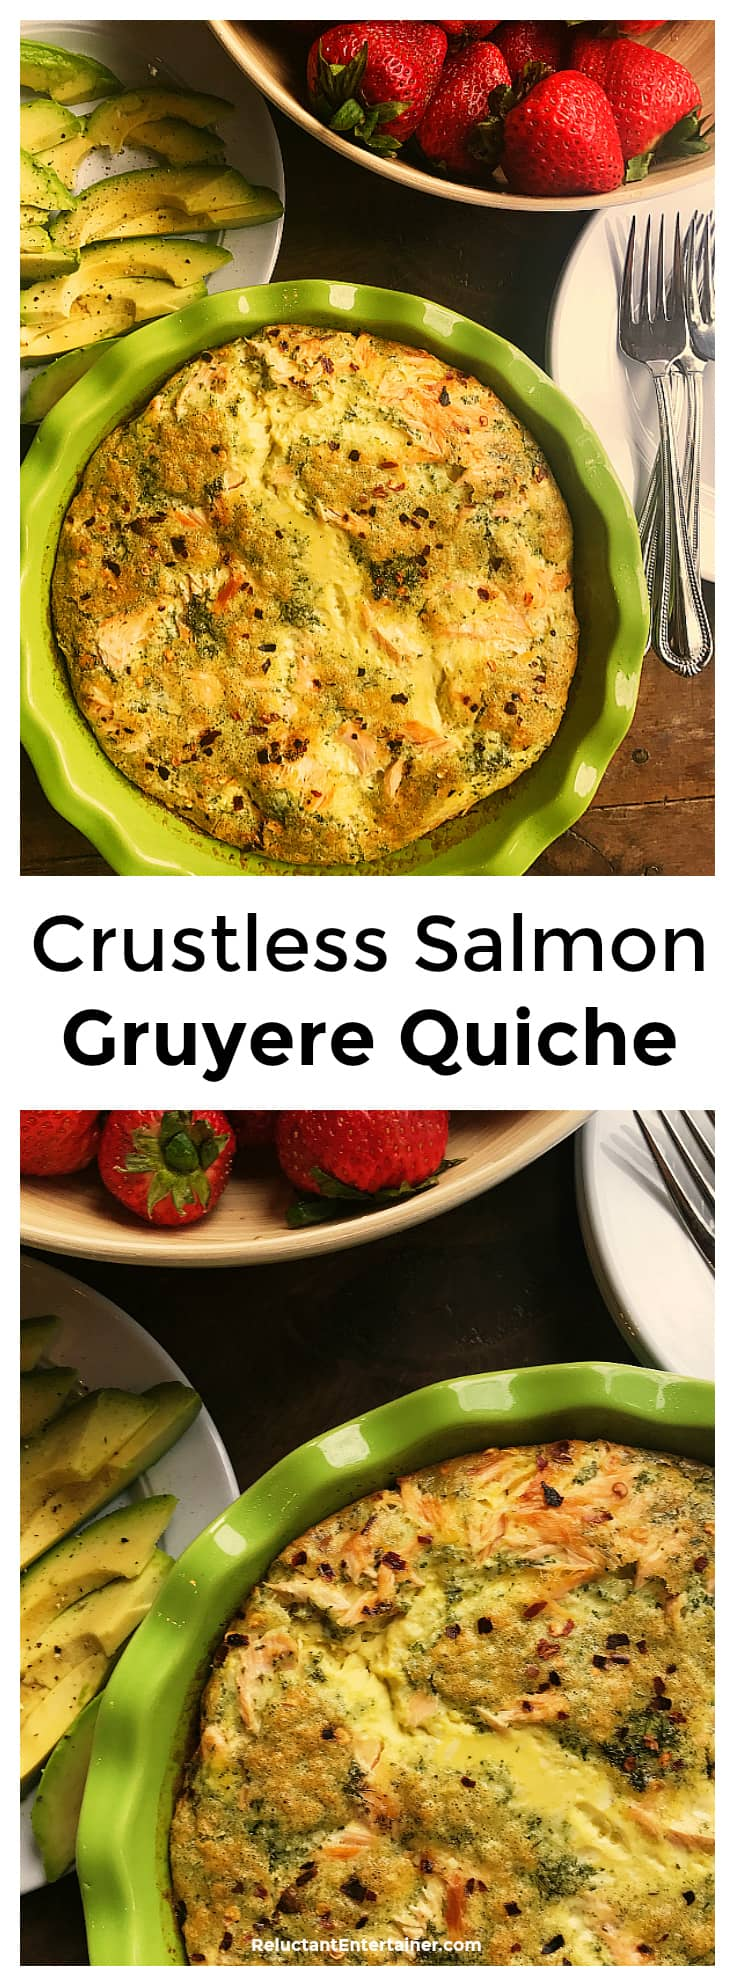 Crustless Salmon Gruyere Quiche Recipe Reluctant Entertainer Watermelon Wallpaper Rainbow Find Free HD for Desktop [freshlhys.tk]